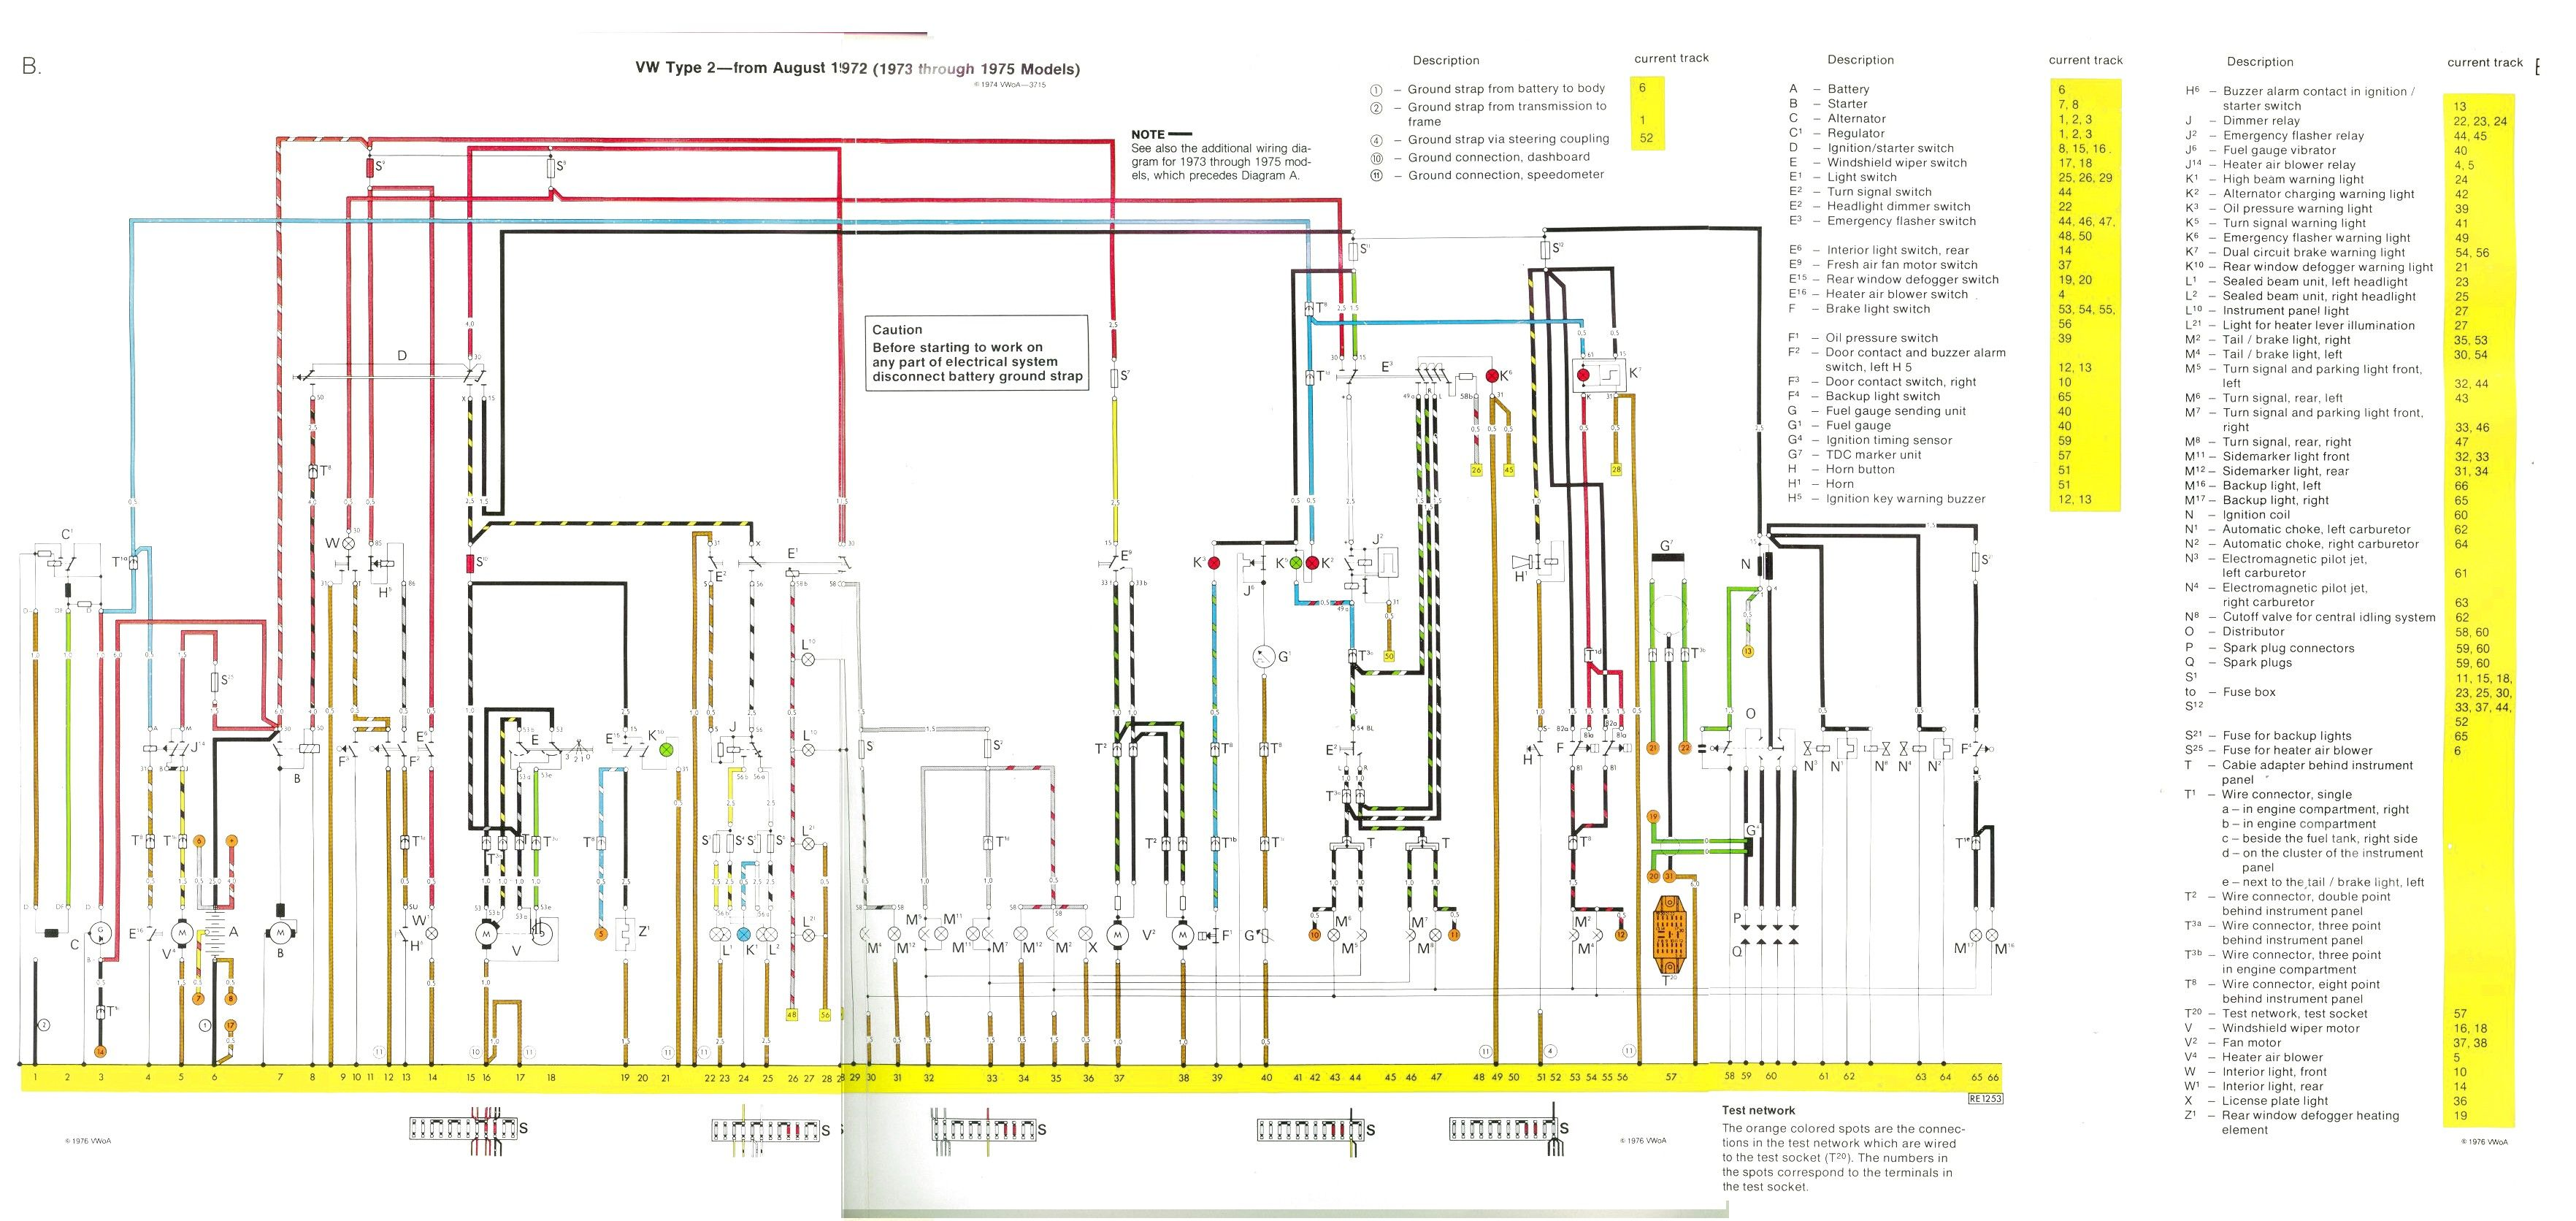 Kb jpeg wiring works wiringworks vw bug replacement wiring harness wiring diagram for models from august 1970 1971 model year page rh pinterest com asfbconference2016 Image collections